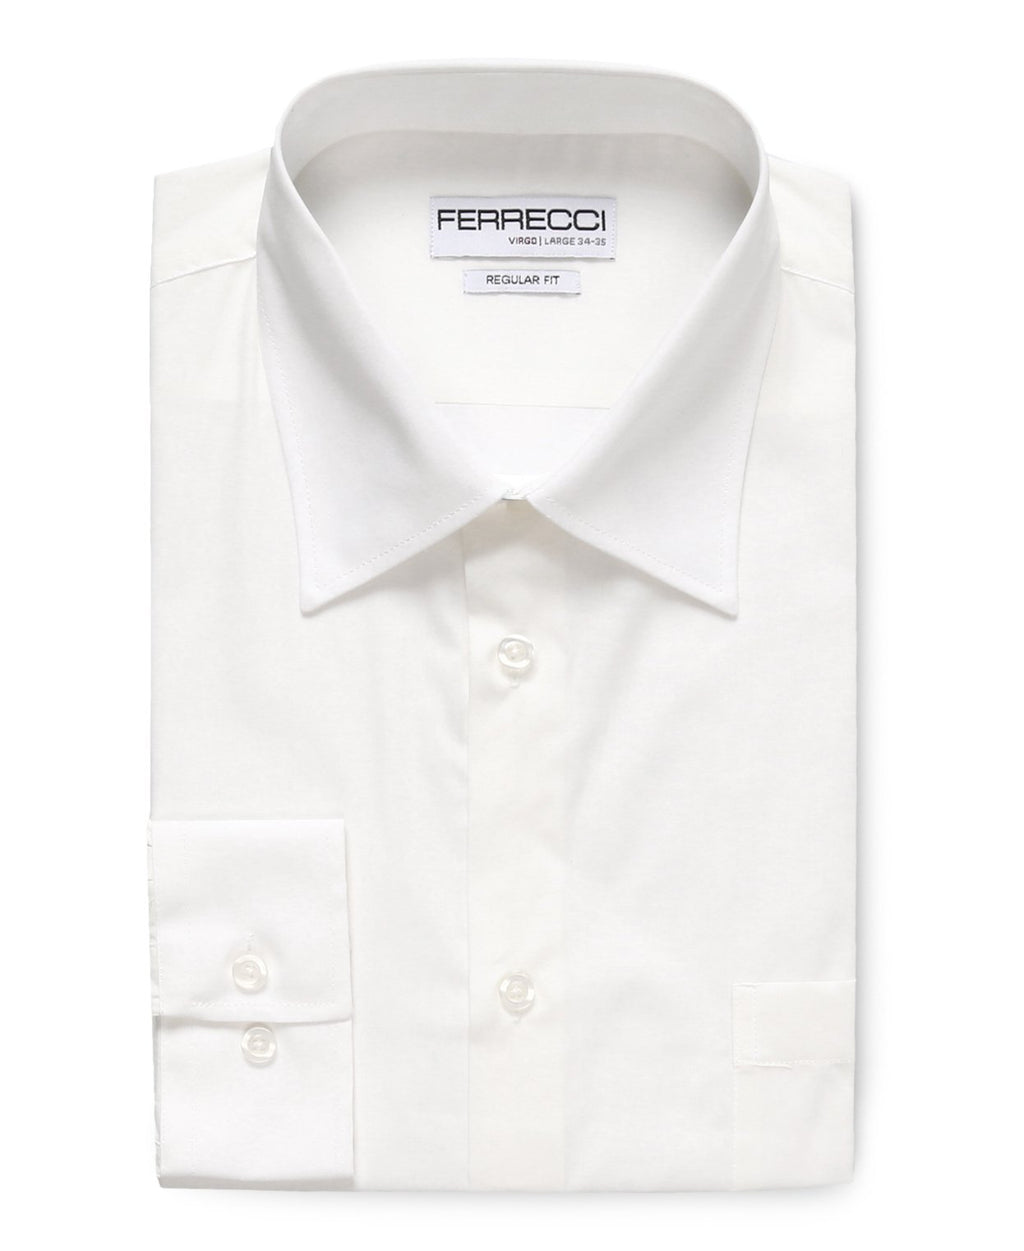 Virgo White Regular Fit Dress Shirt - Giorgio's Menswear